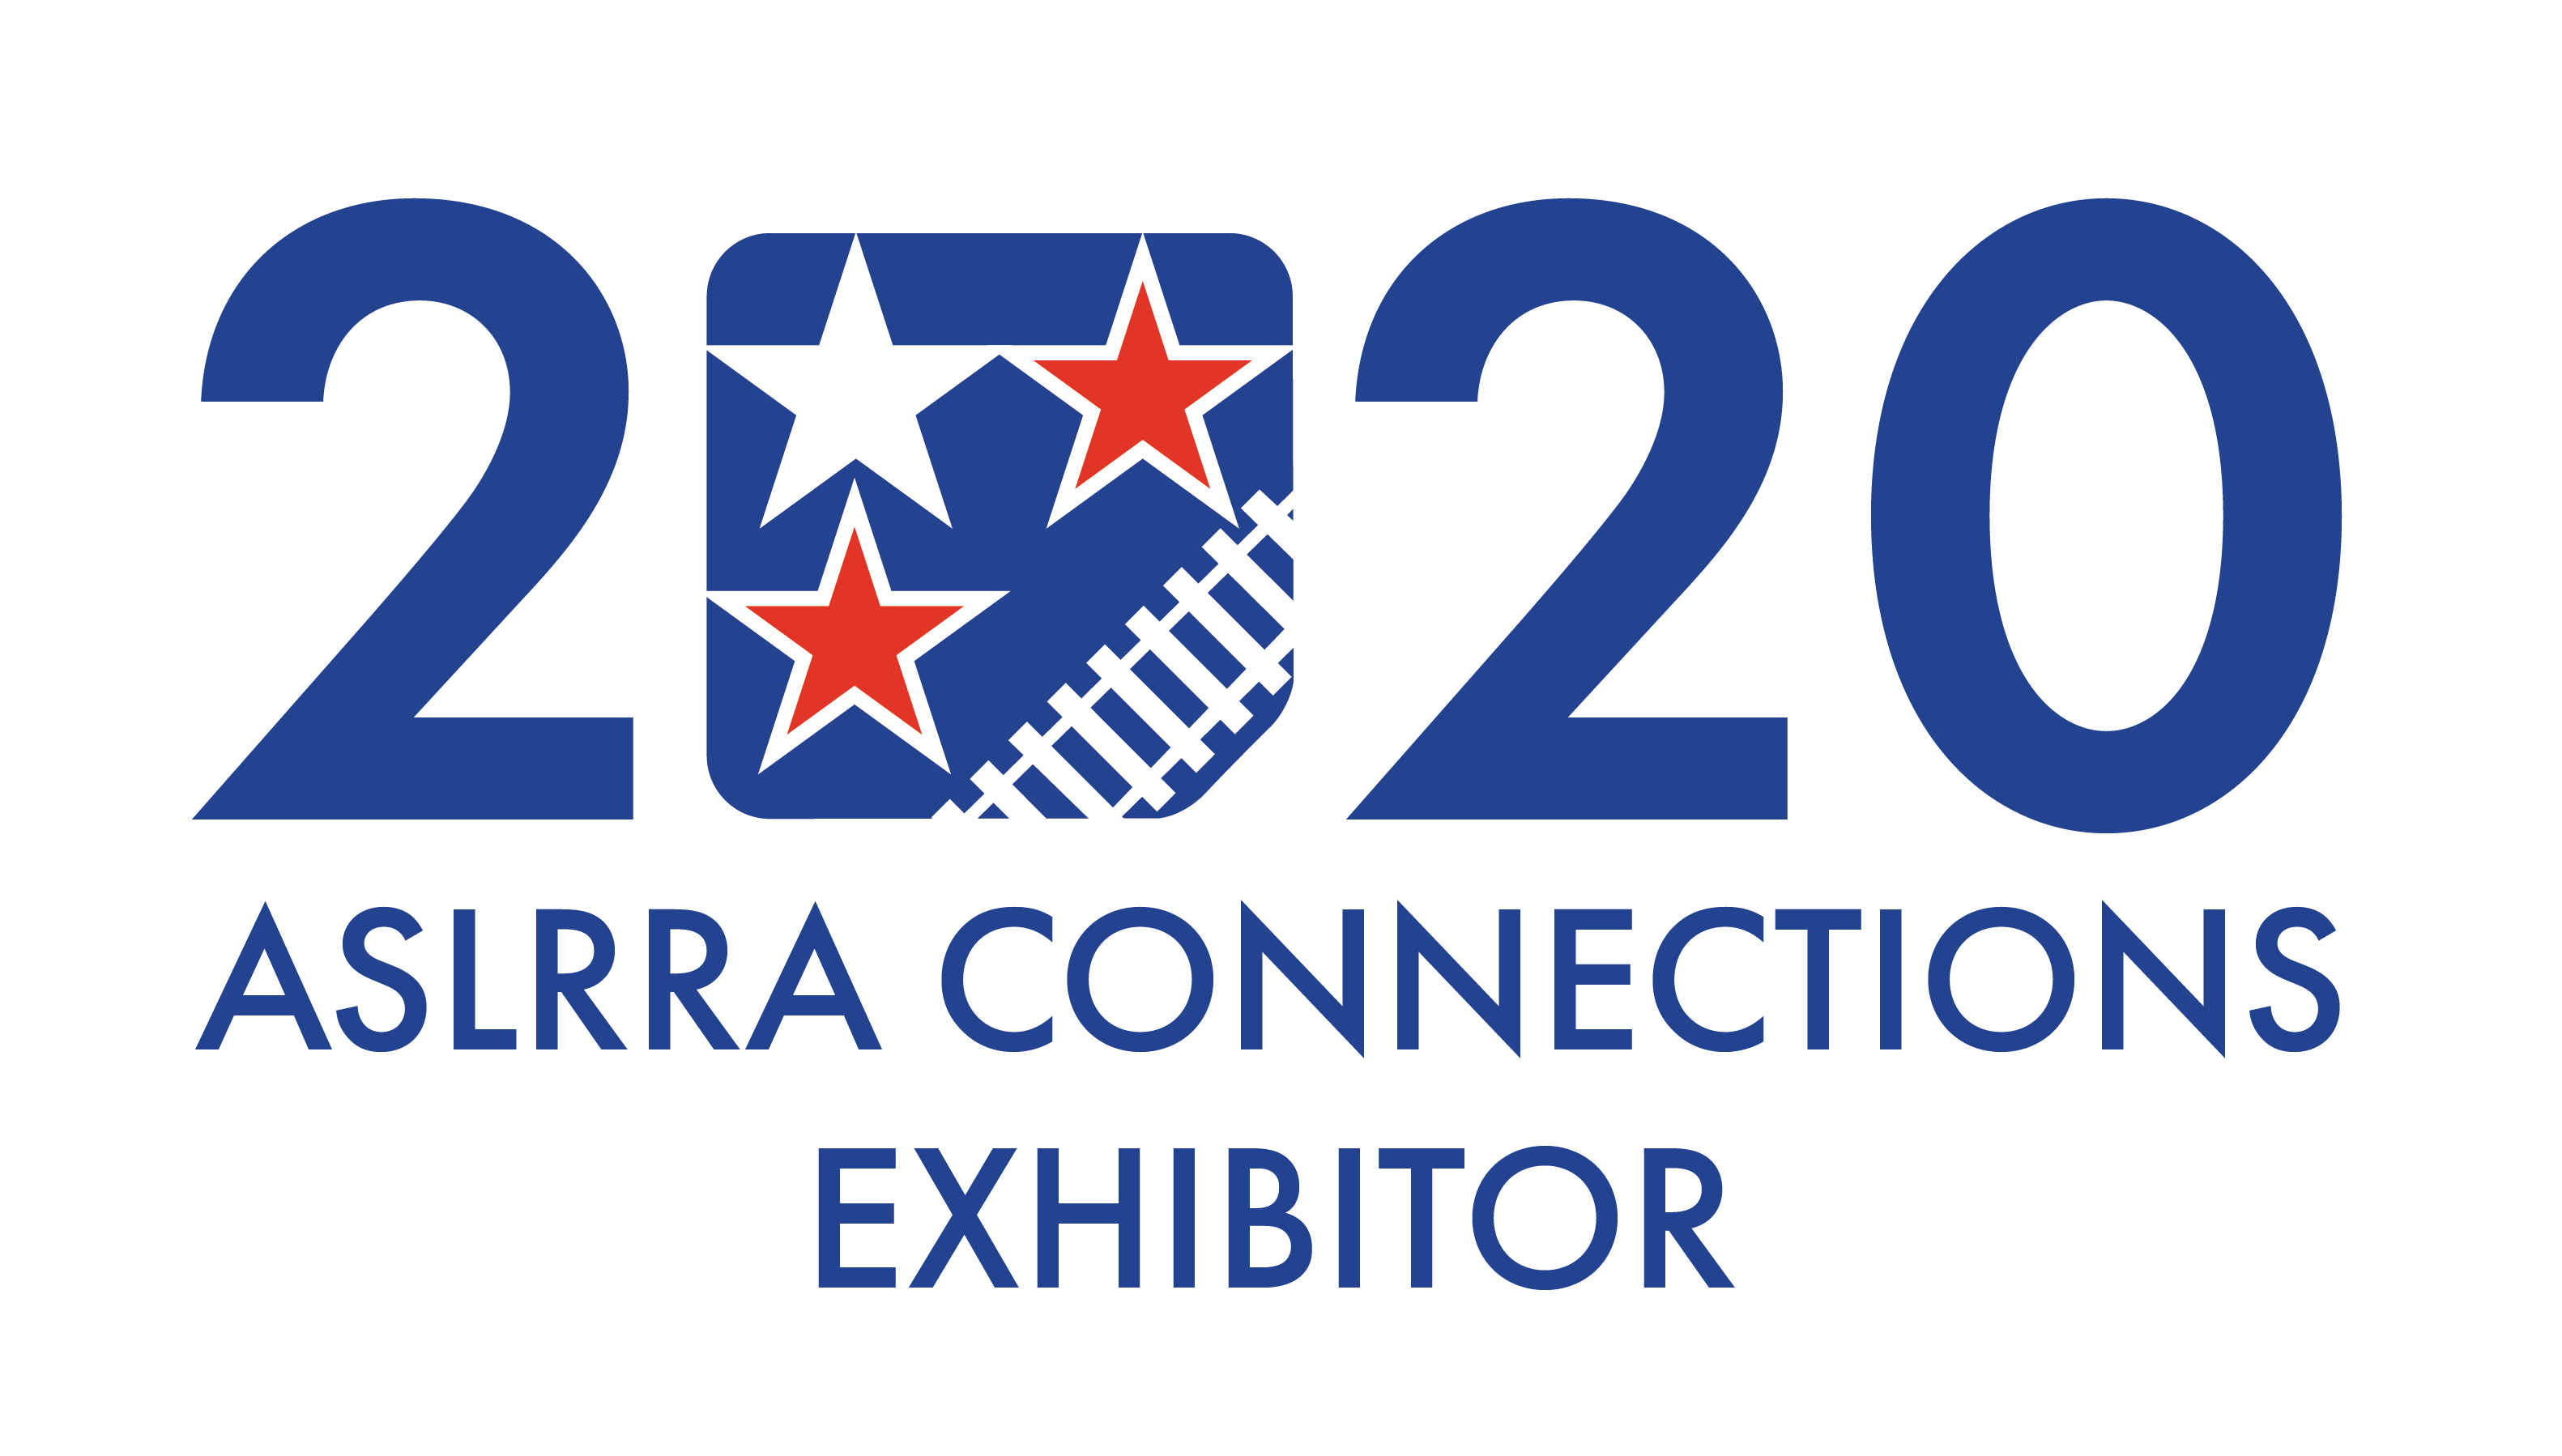 *POSTPONED* ASLRRA Annual Connections 2020